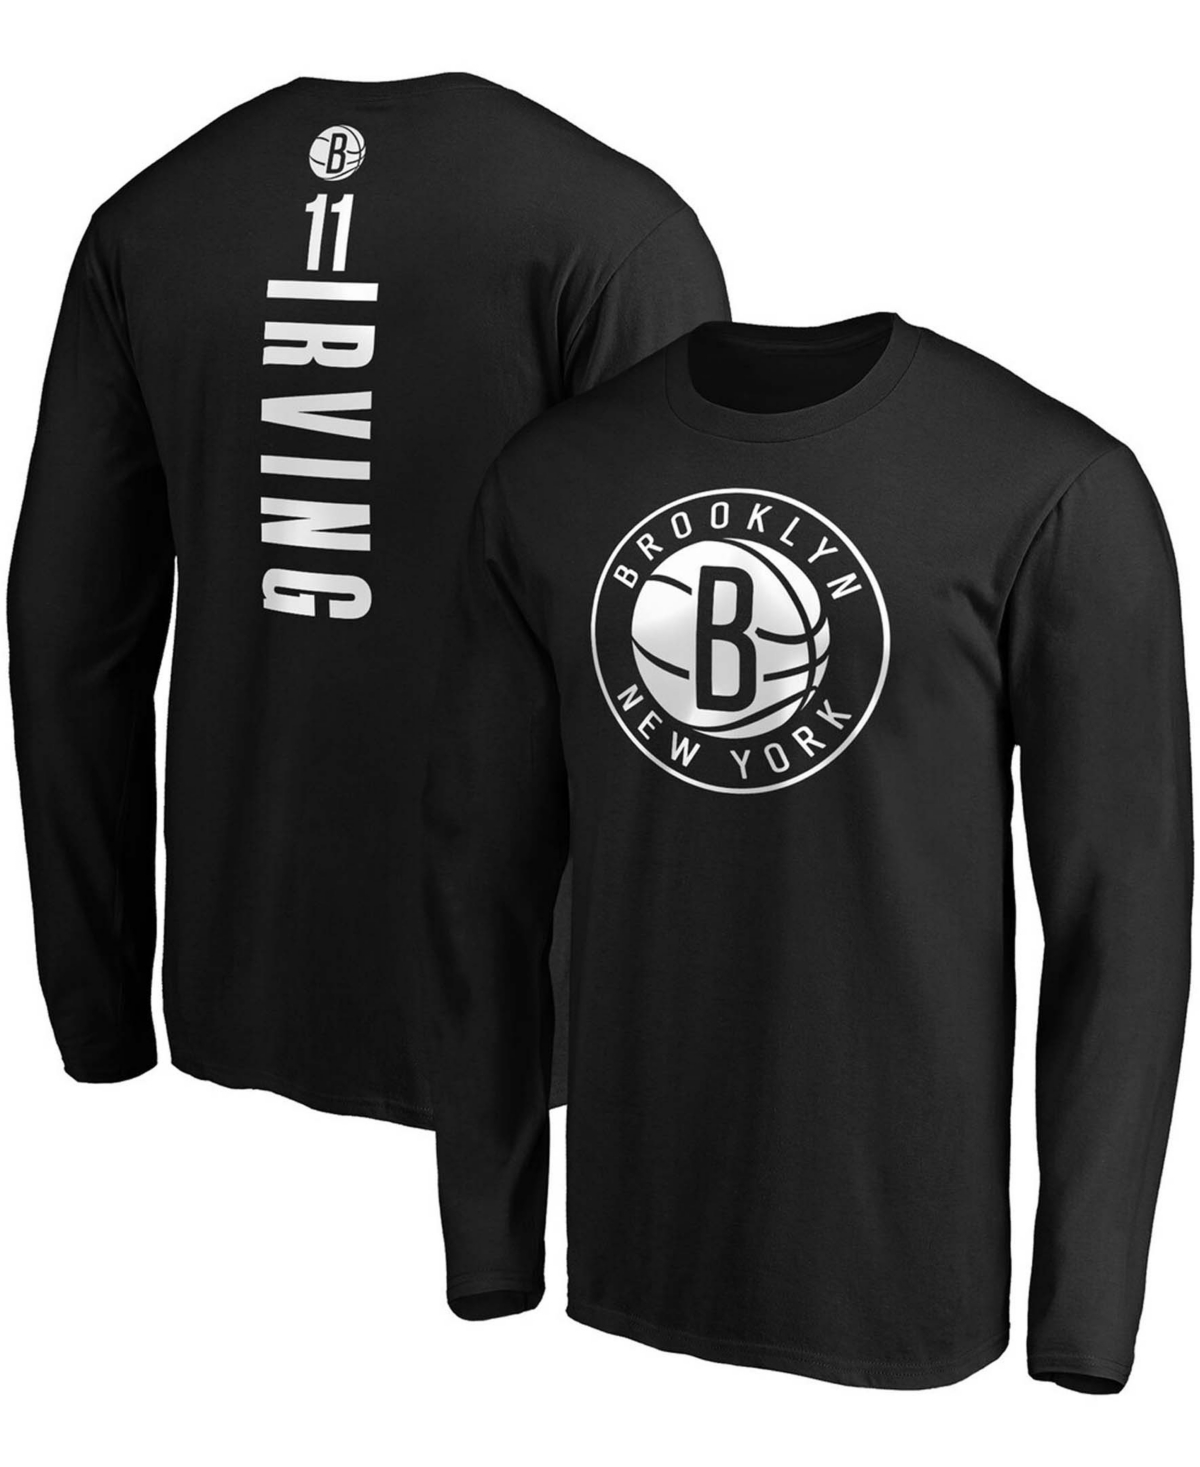 Men's Kyrie Irving Black Brooklyn Nets Team Playmaker Name and Number Long Sleeve T-shirt